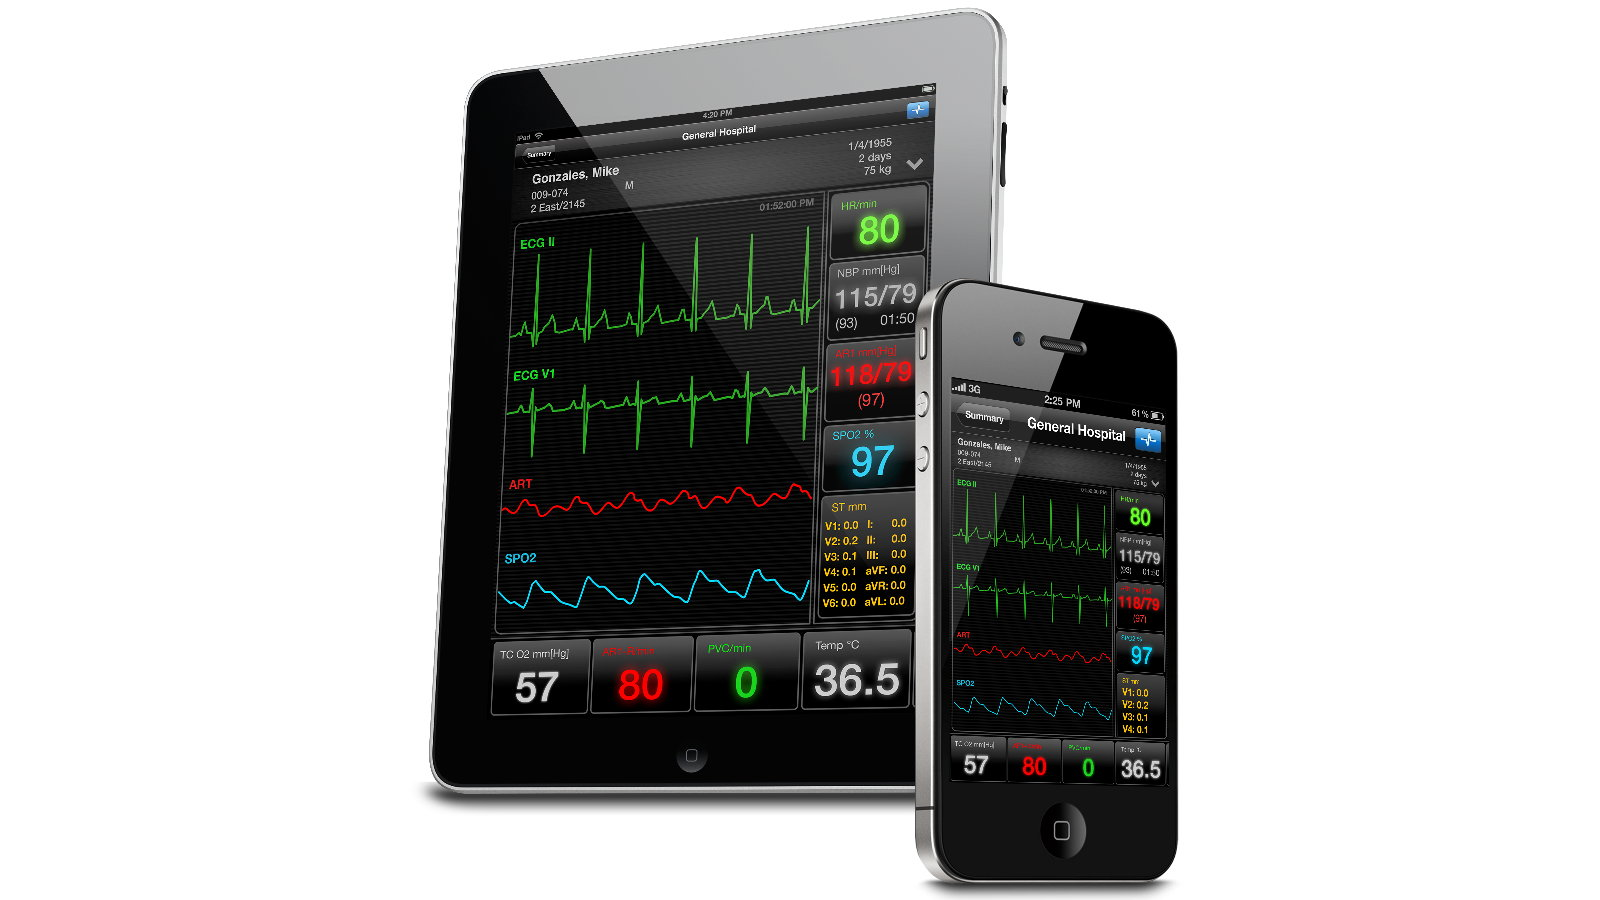 Click here to read How Tomorrow's Mobile Doctors Will Monitor Your Vital Stats